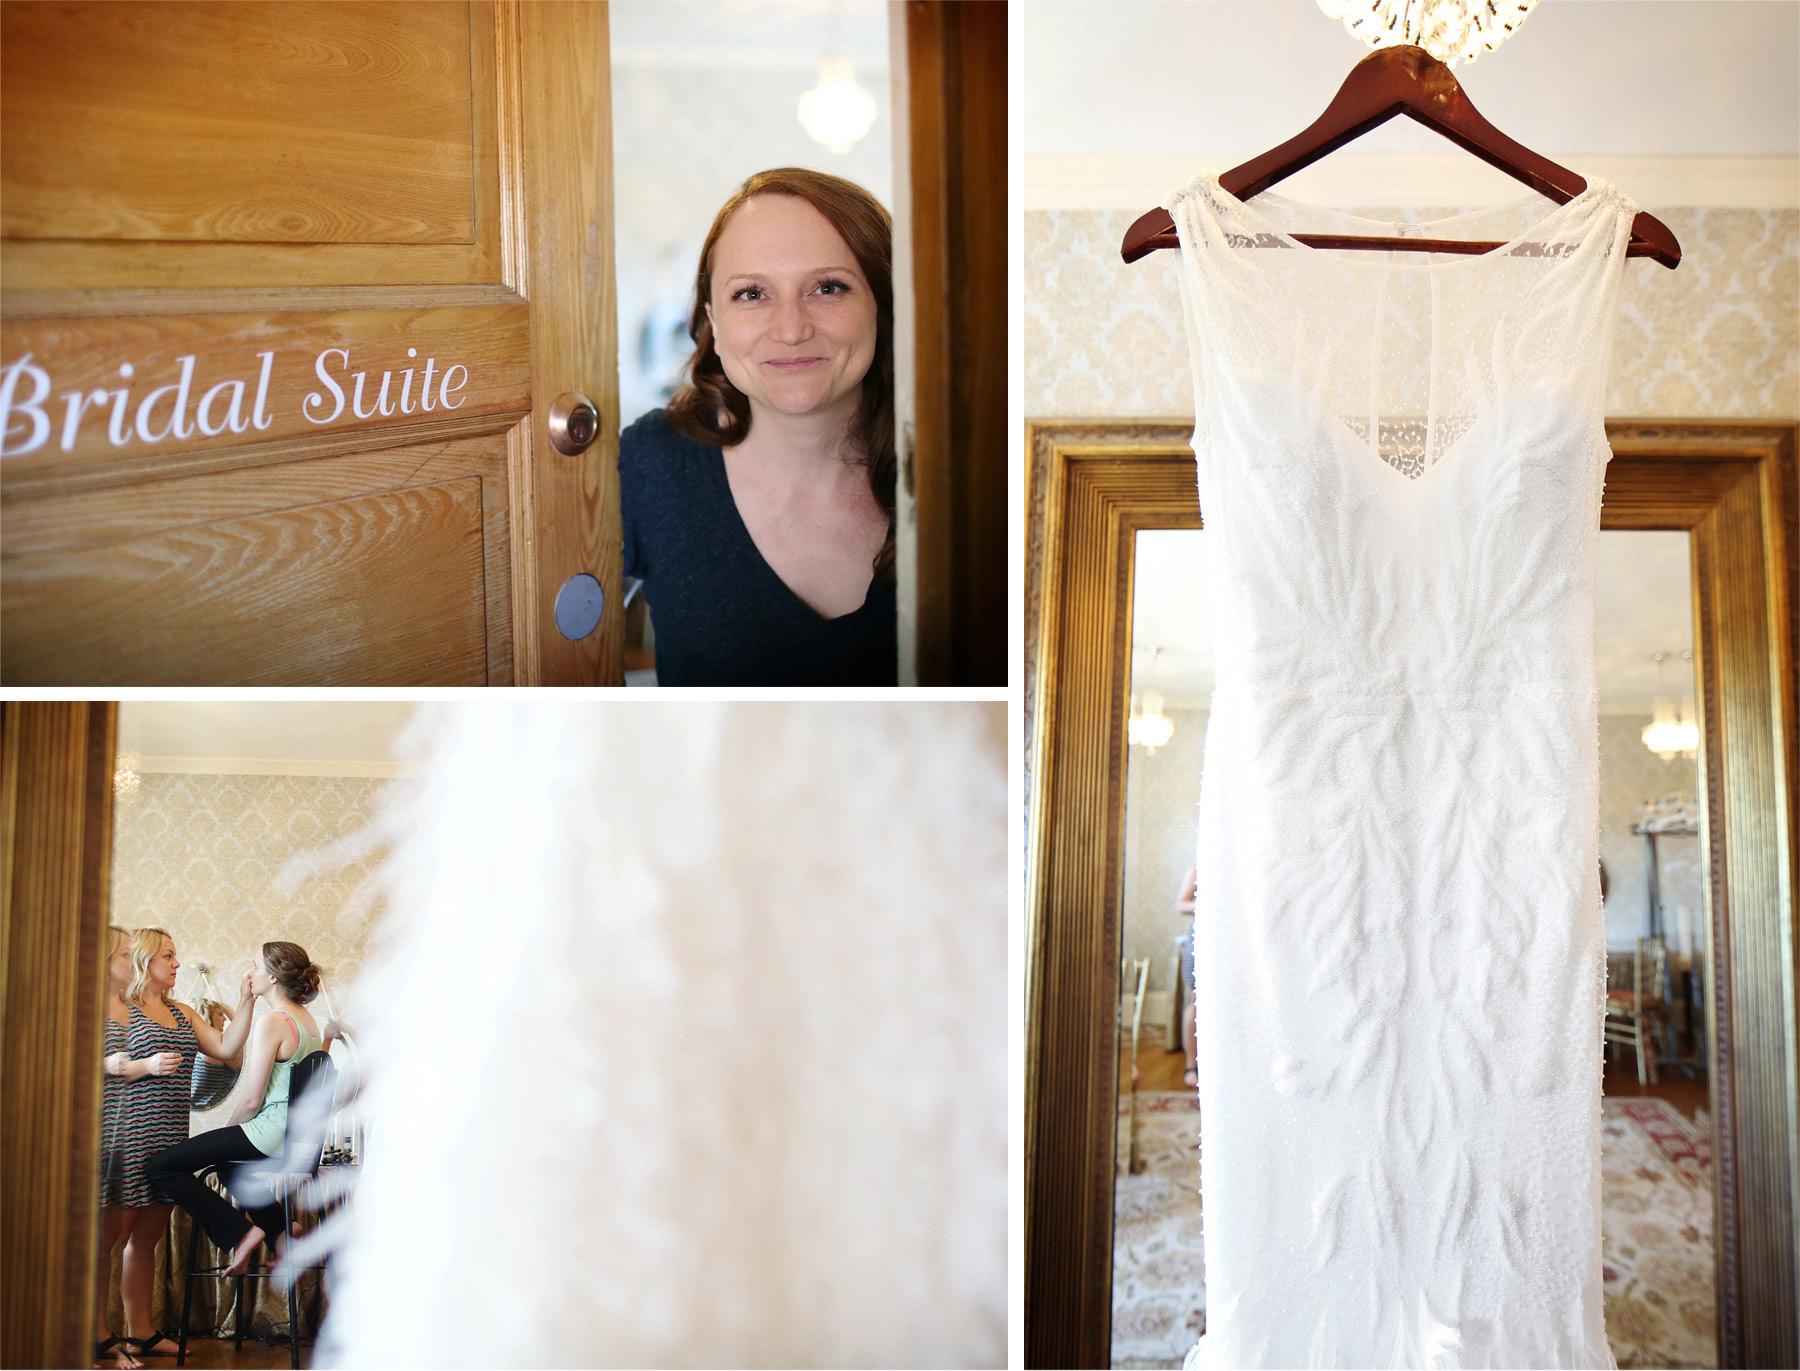 01-Minneapolis-Minnesota-Wedding-Photographer-by-Andrew-Vick-Photography-Summer-Semple-Mansion-Bridal-Suite-Bride-Bridesmaid-Dress-Getting-Ready-Stephanie-and-Robert.jpg